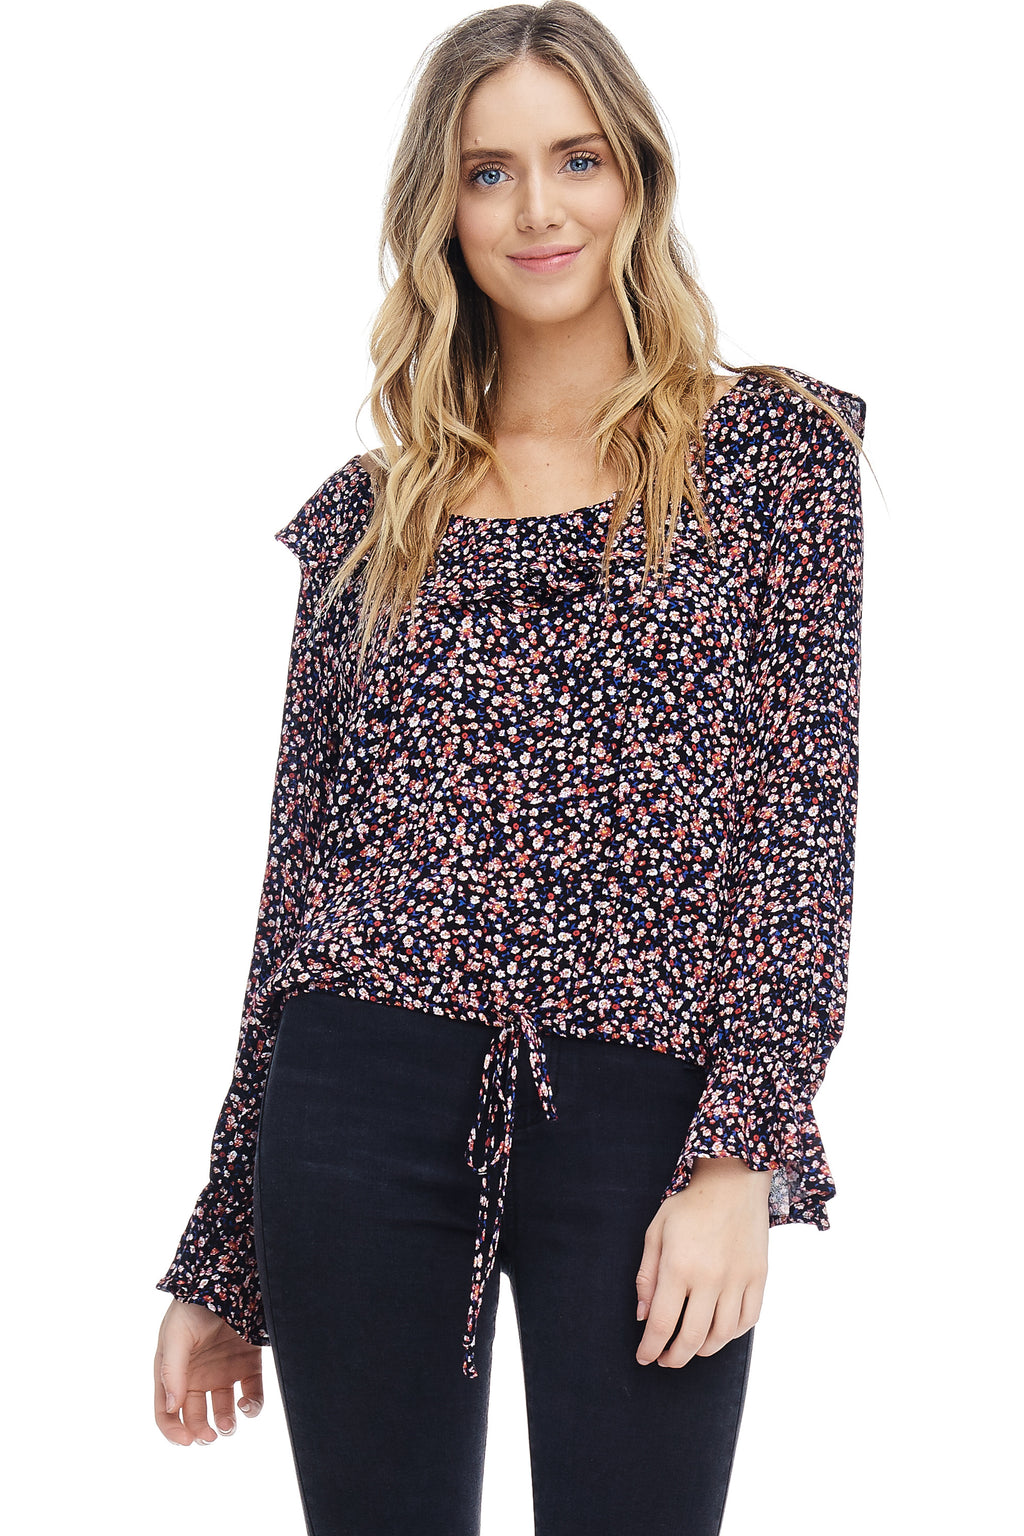 W18-100 Floral Ruffled Blouse